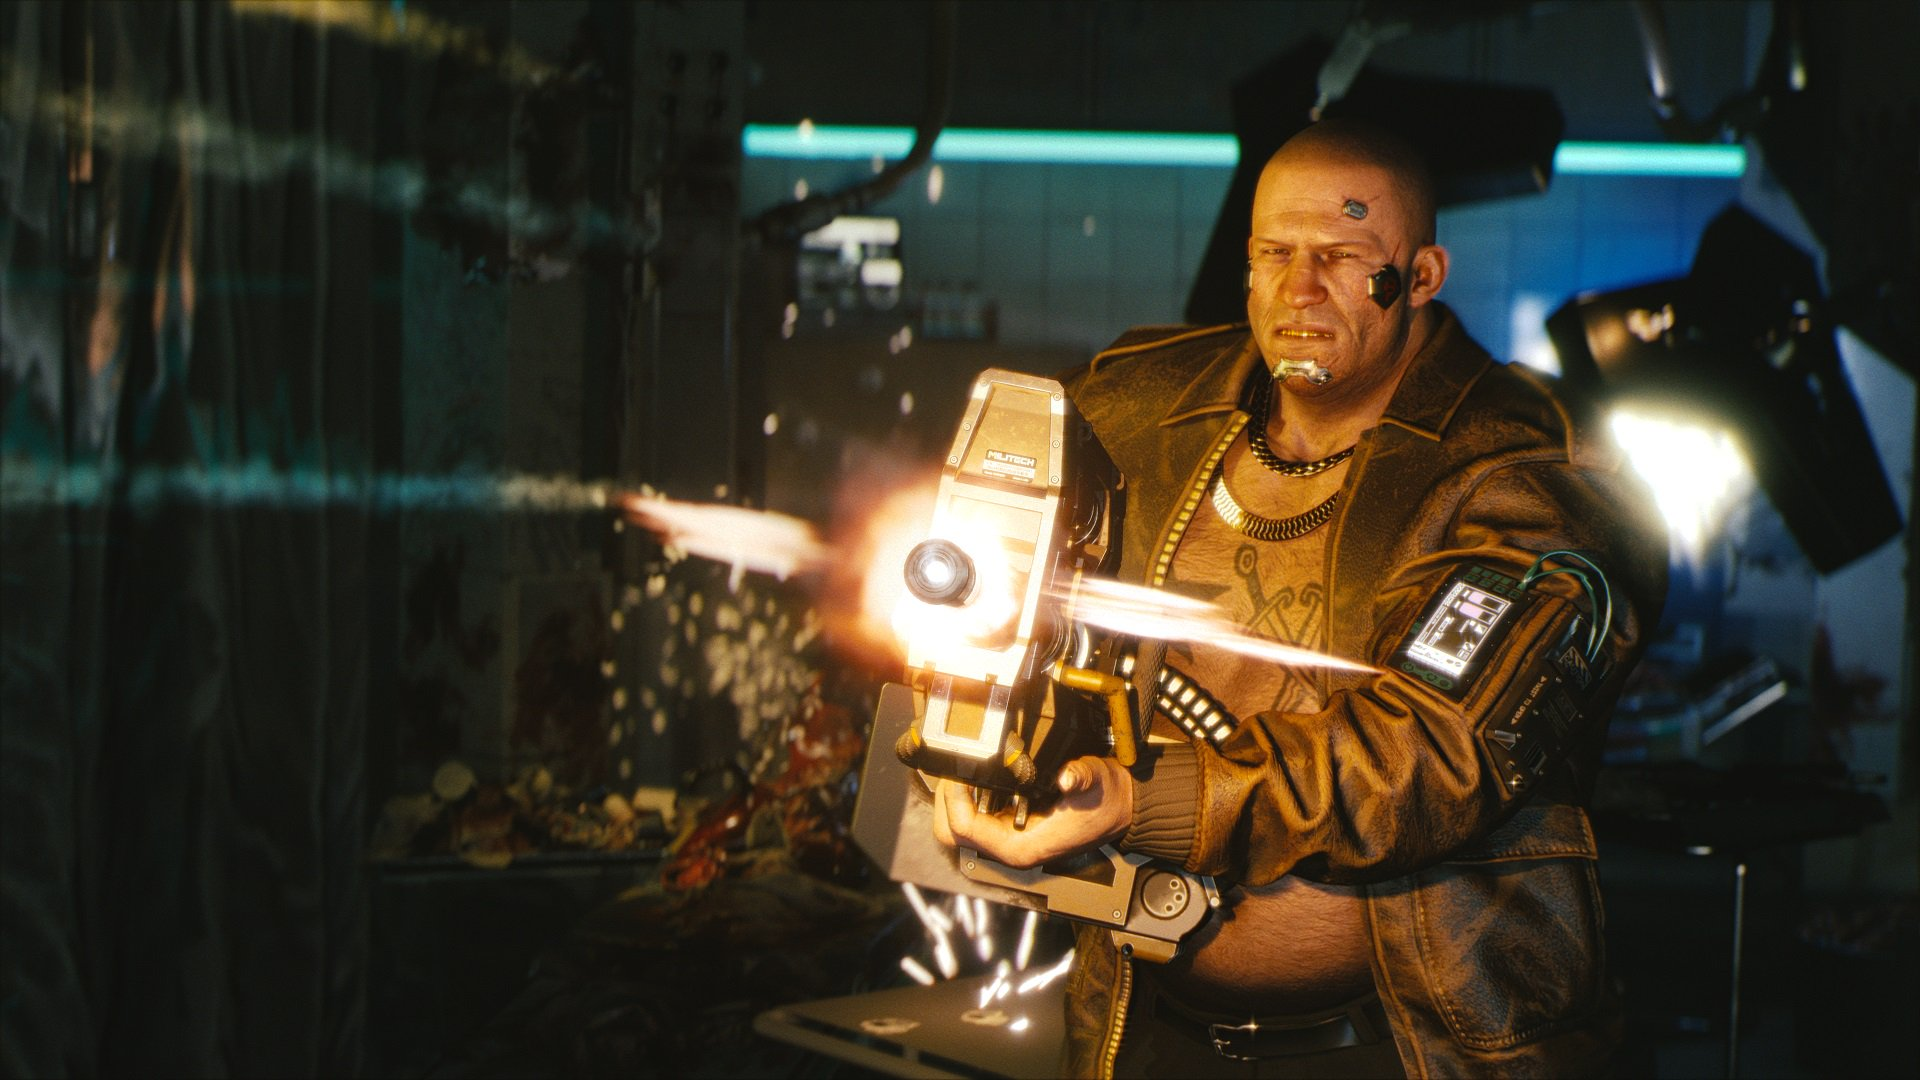 Cyberpunk 2077 Will Have No Loading Screens, According To Its Developer